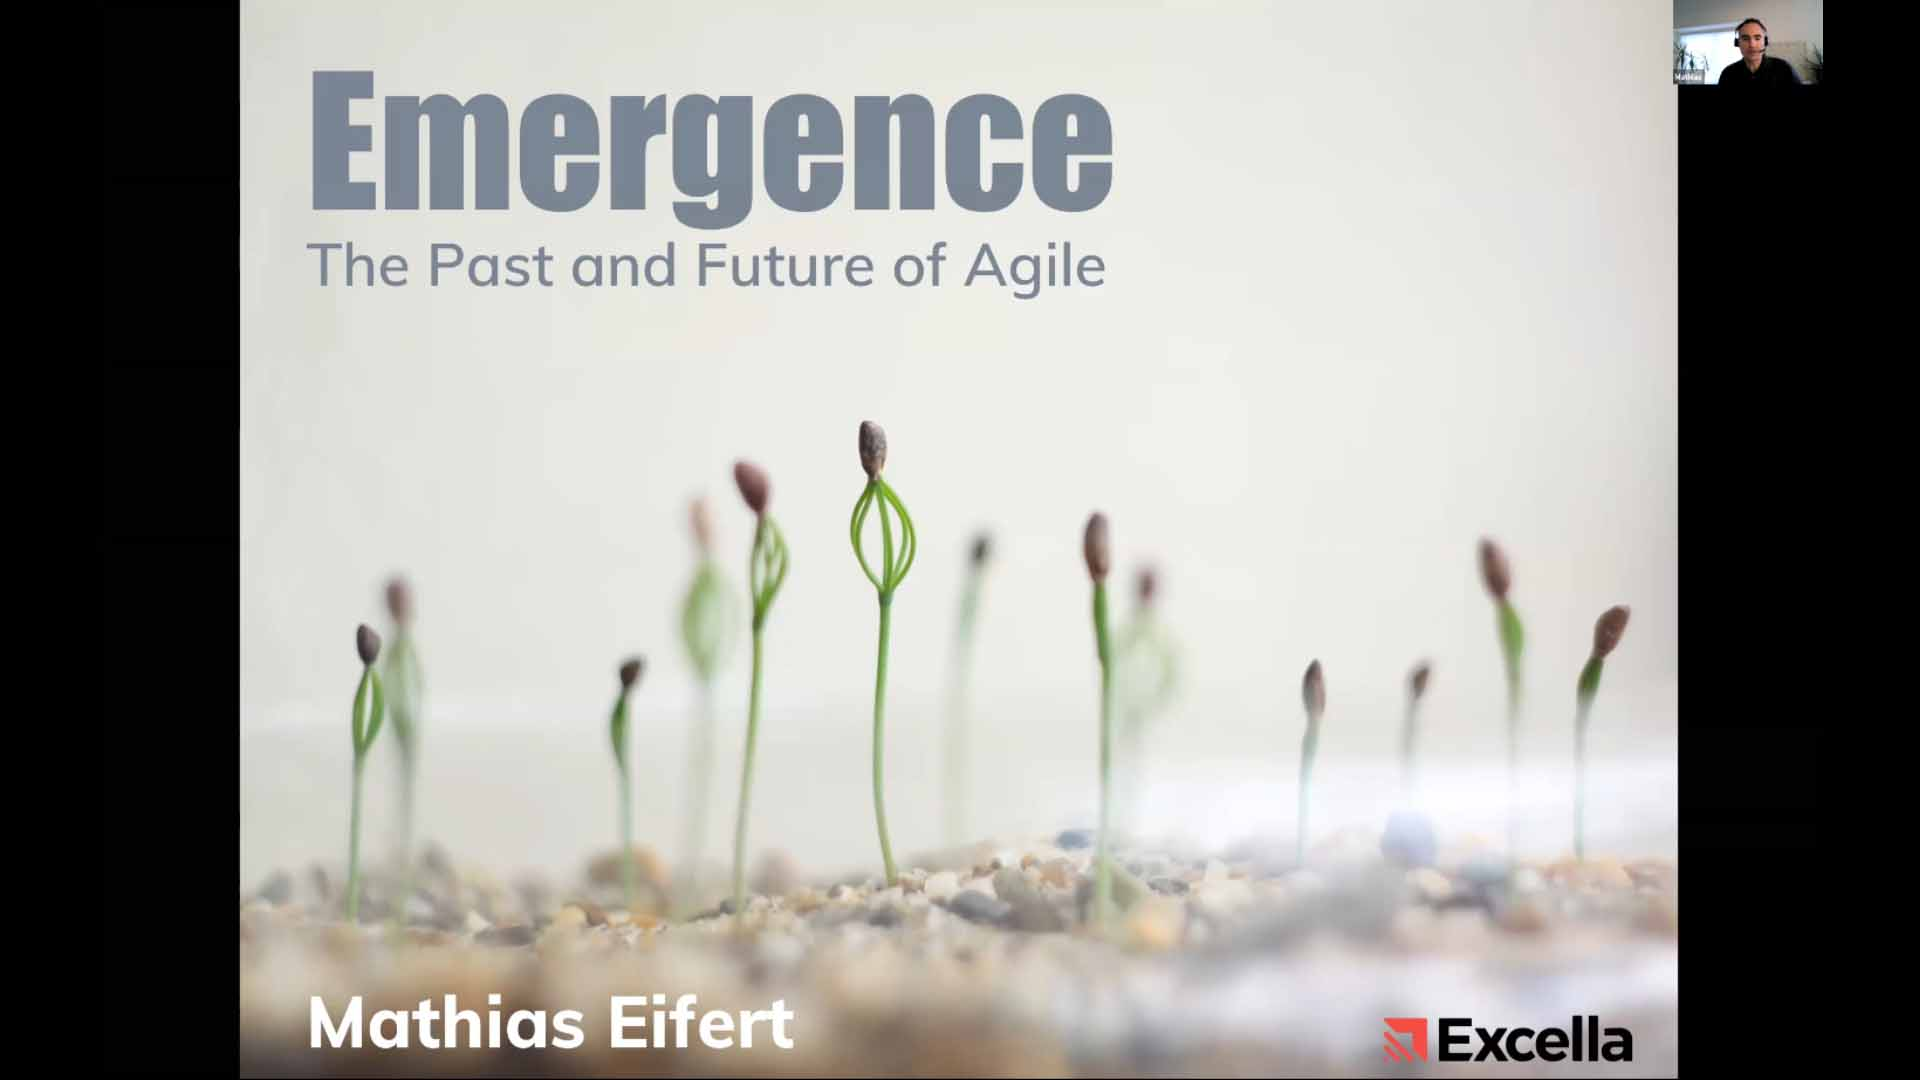 Emergence, The past and future of Agile by Mathias Eifert